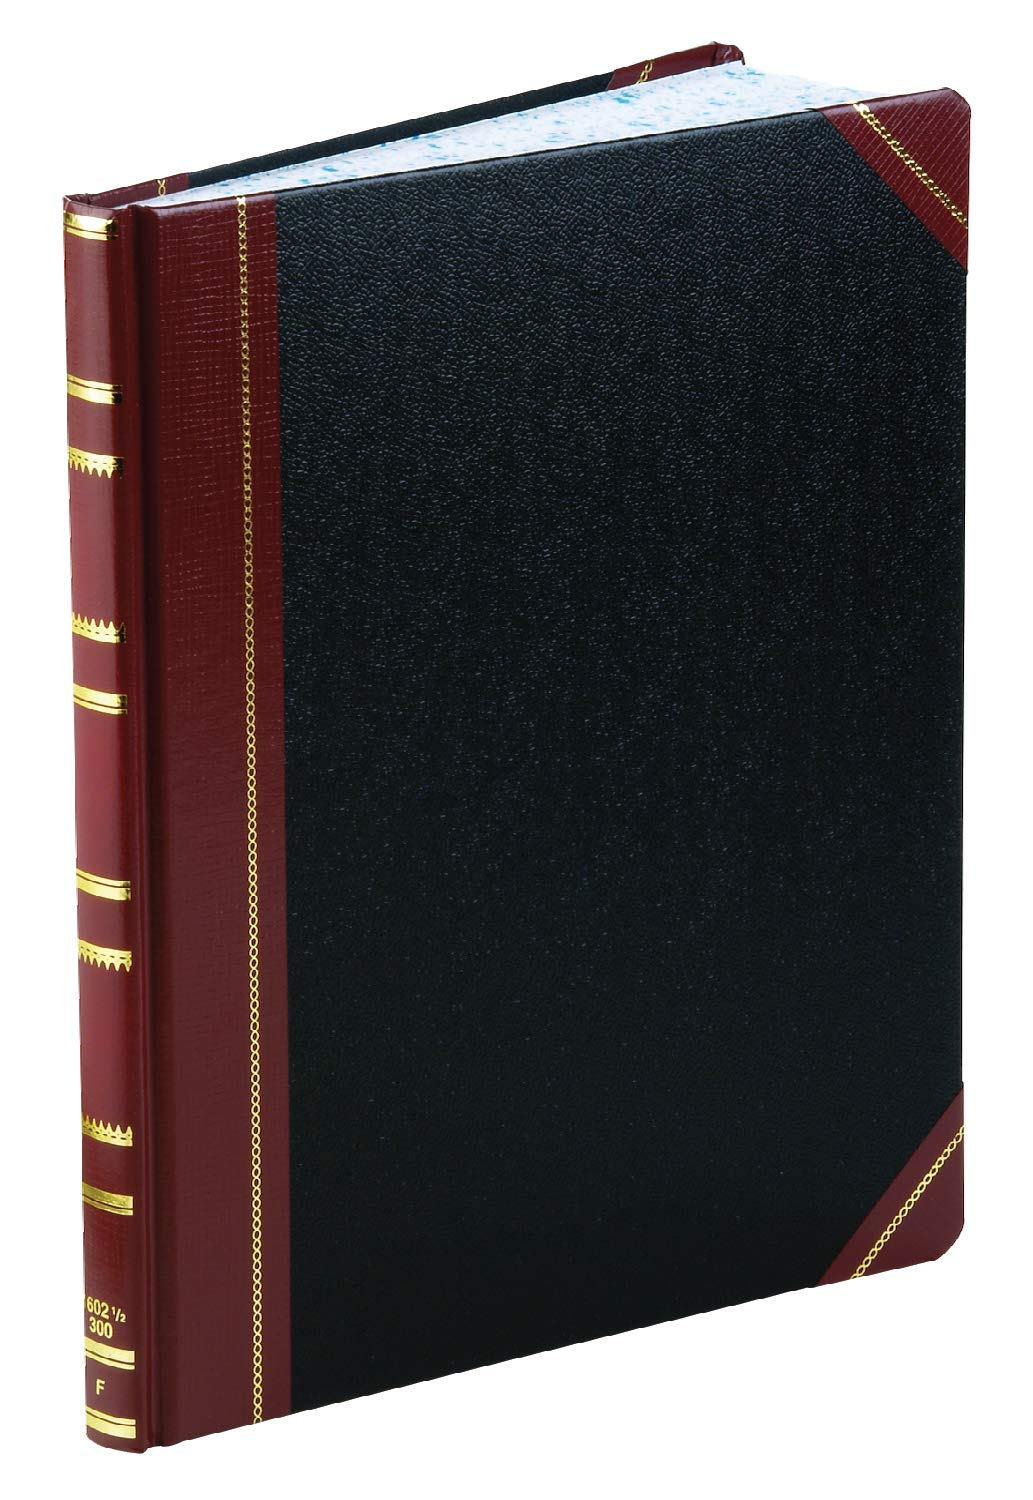 Boorum & Pease 1602123F Record Ruled Book, Black Cover, 300 Pages, 10 1/8 x 12 1/4